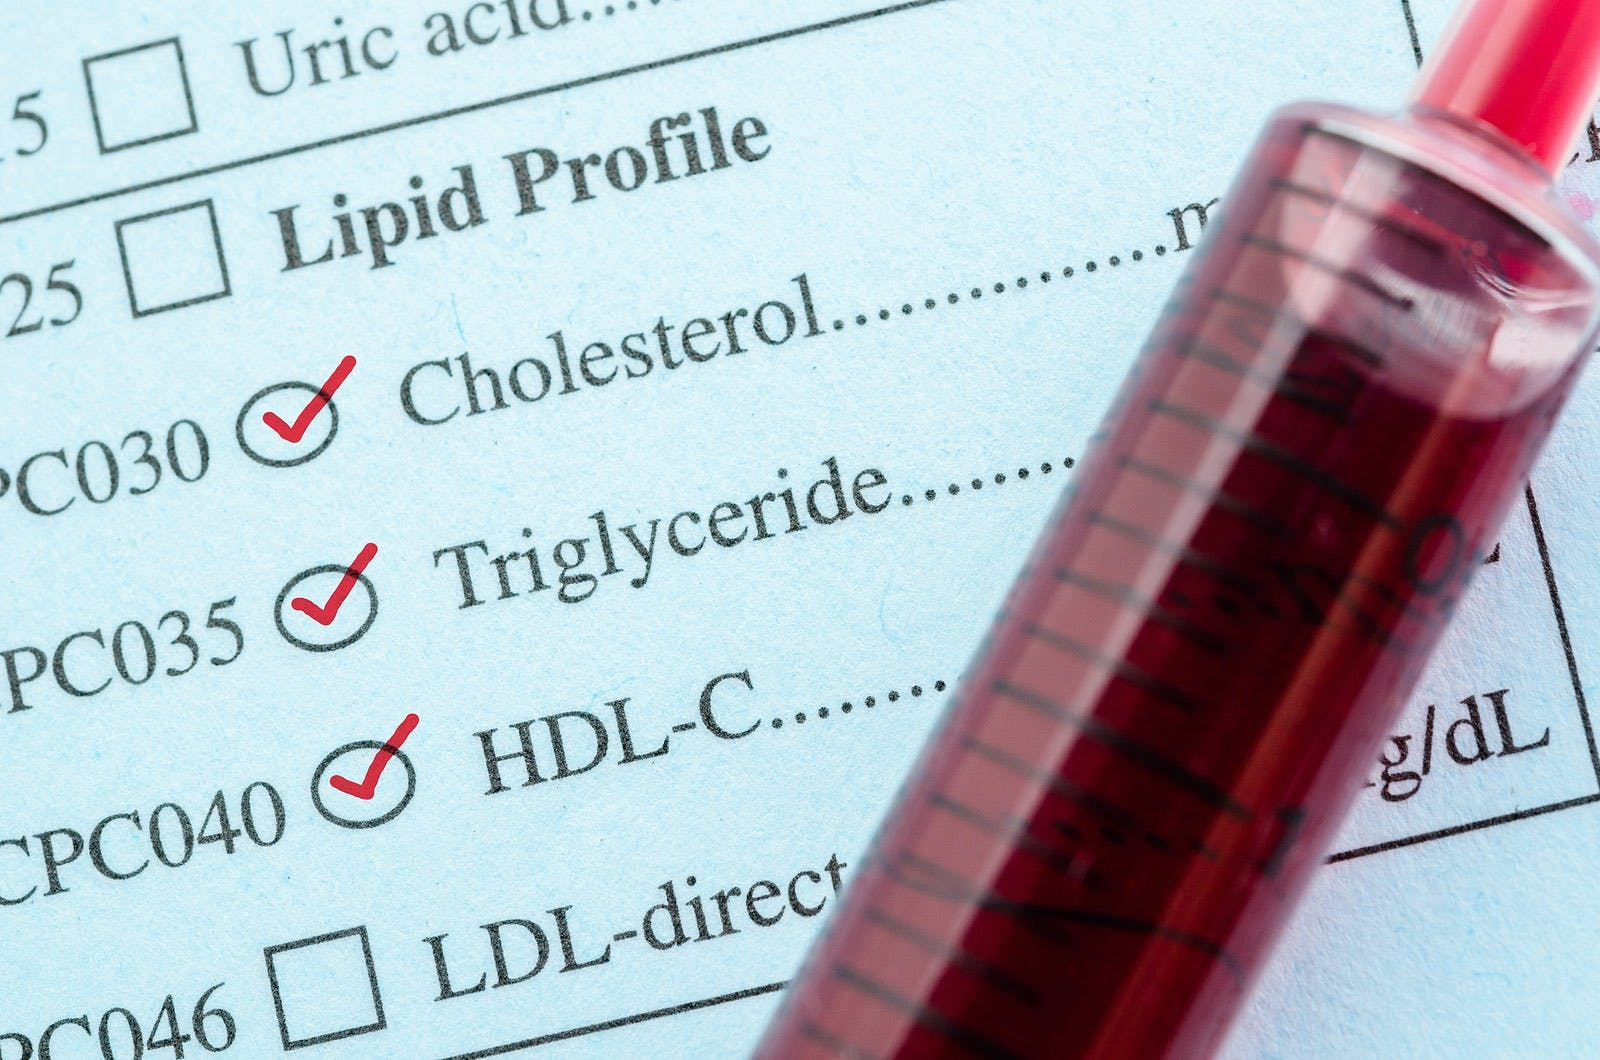 Lipid profile with cholesterol and tube of blood